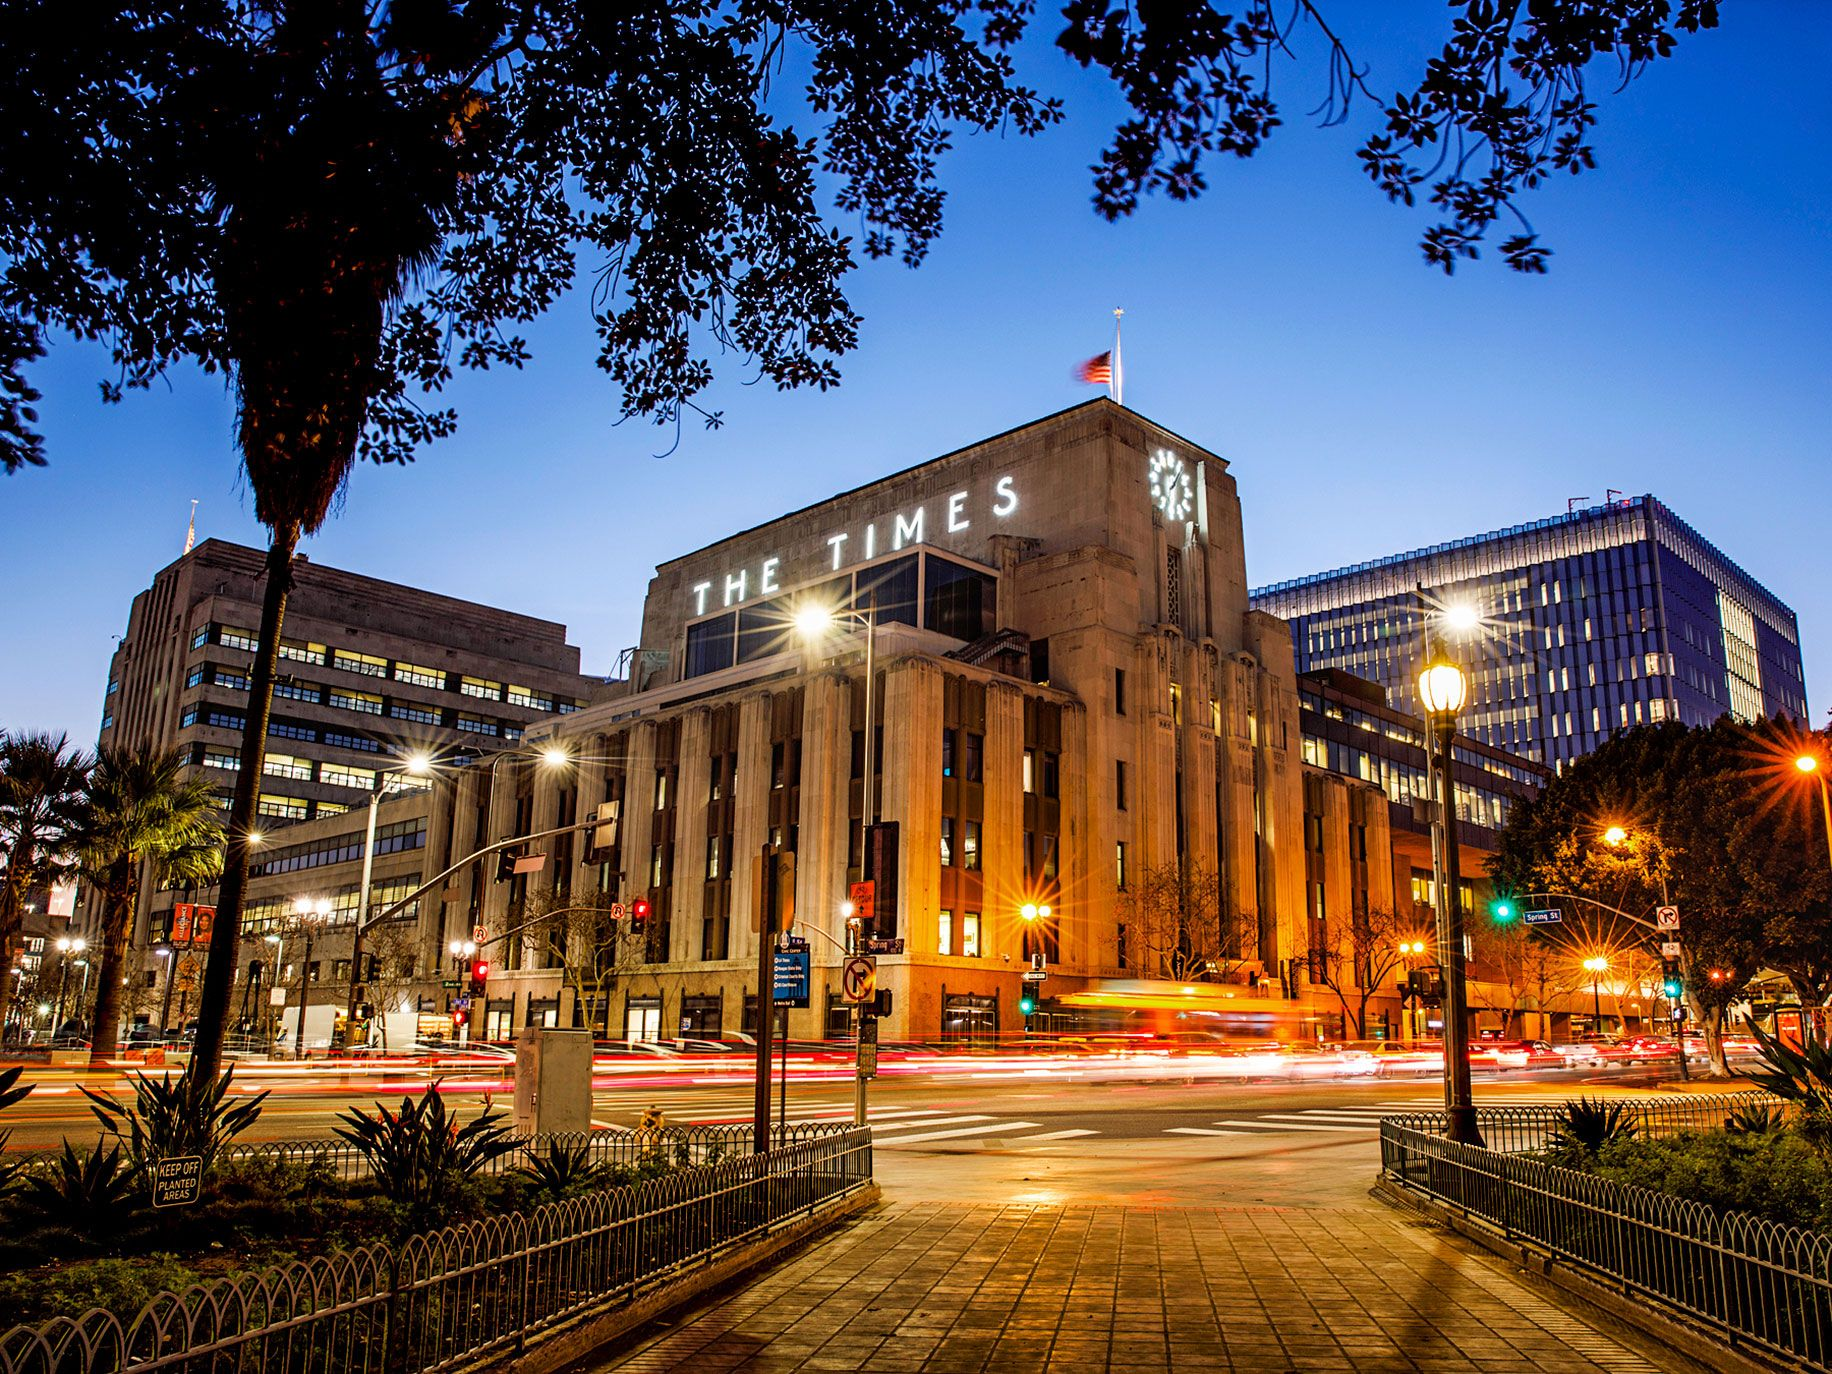 The former Los Angeles Times building in downtown Los Angeles, which a Canadian real estate firm purchased for $105 million in September 2016—almost a year and a half before Soon-Shiong bought the newspaper.